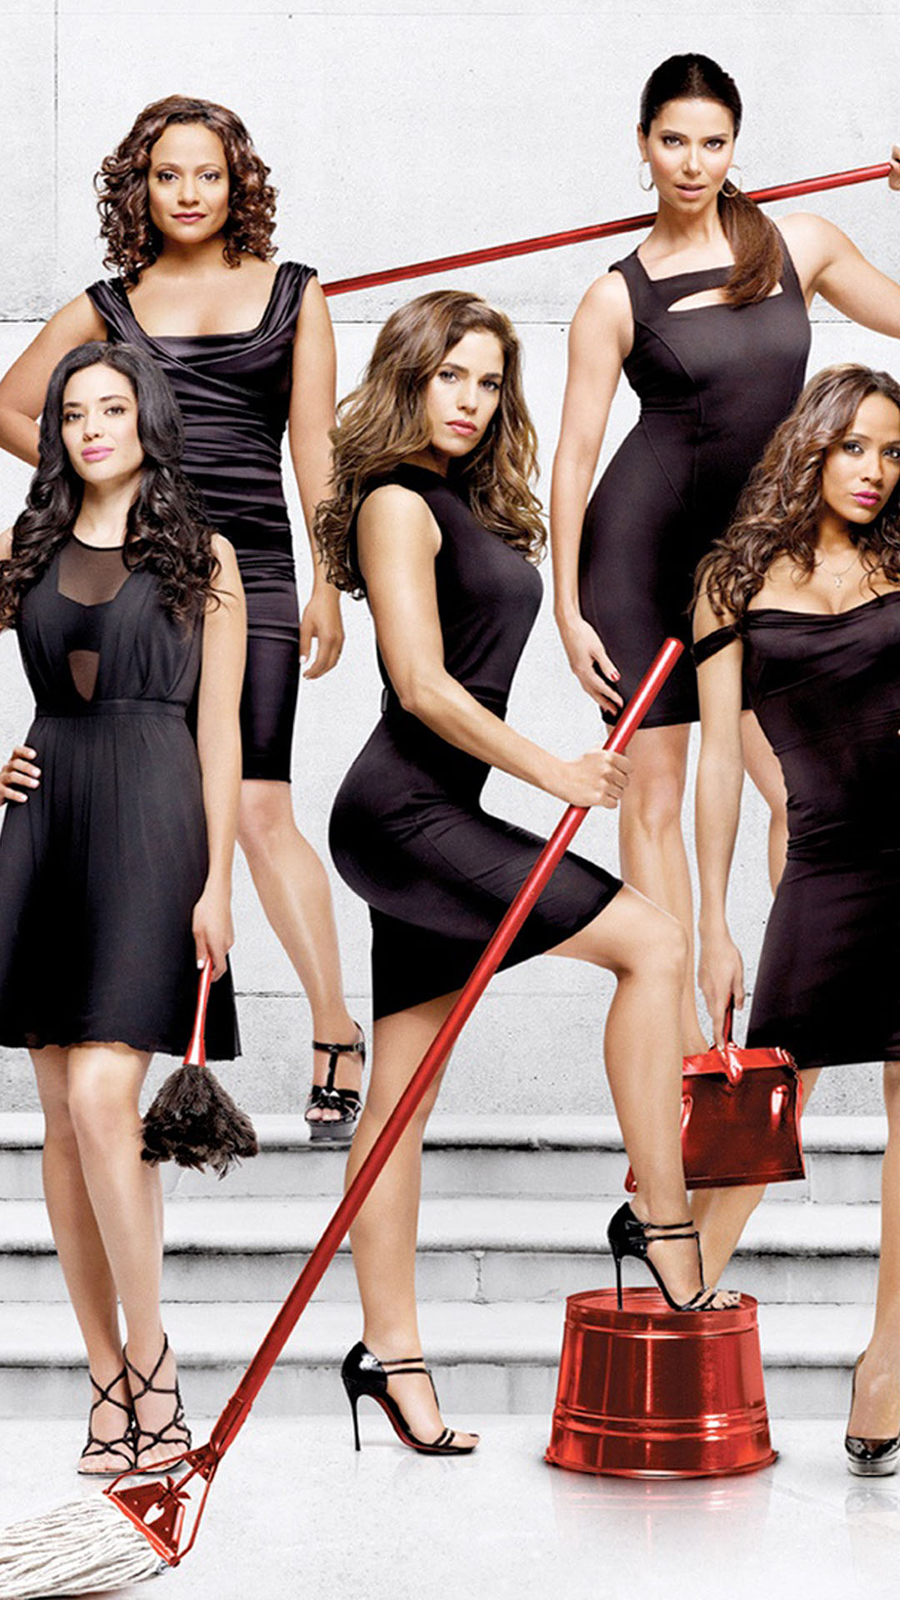 Devious Maids Series Wallpapers Free Download